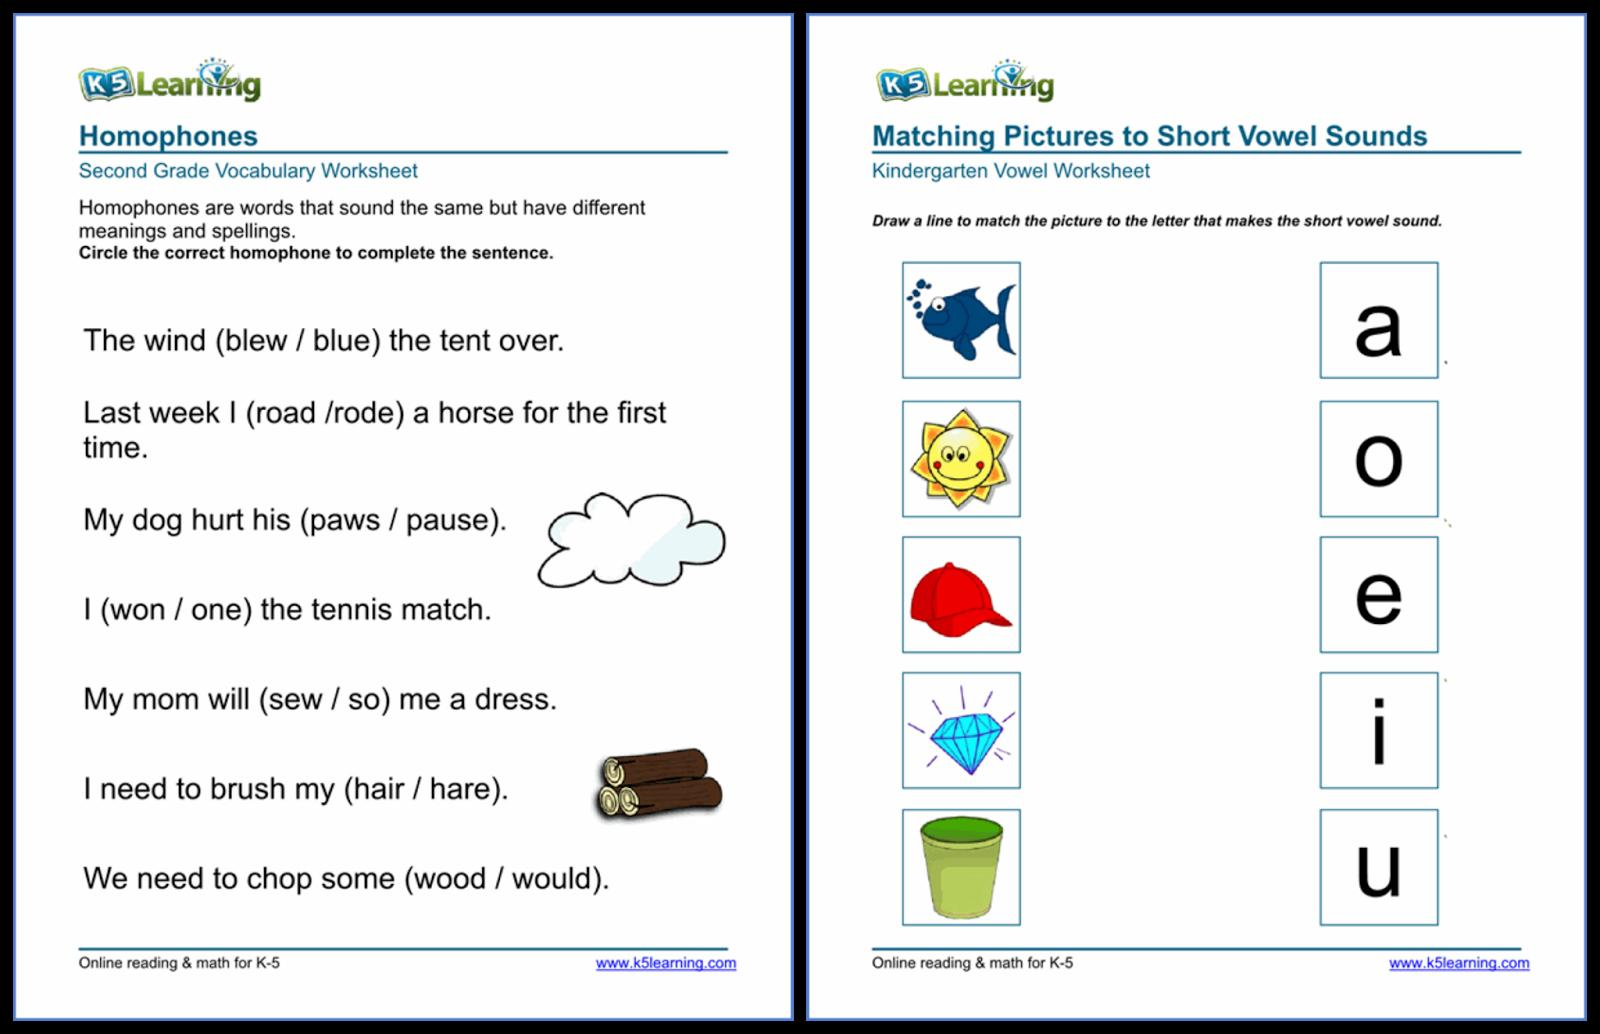 Grade 4 Math Worksheets K5 Learning